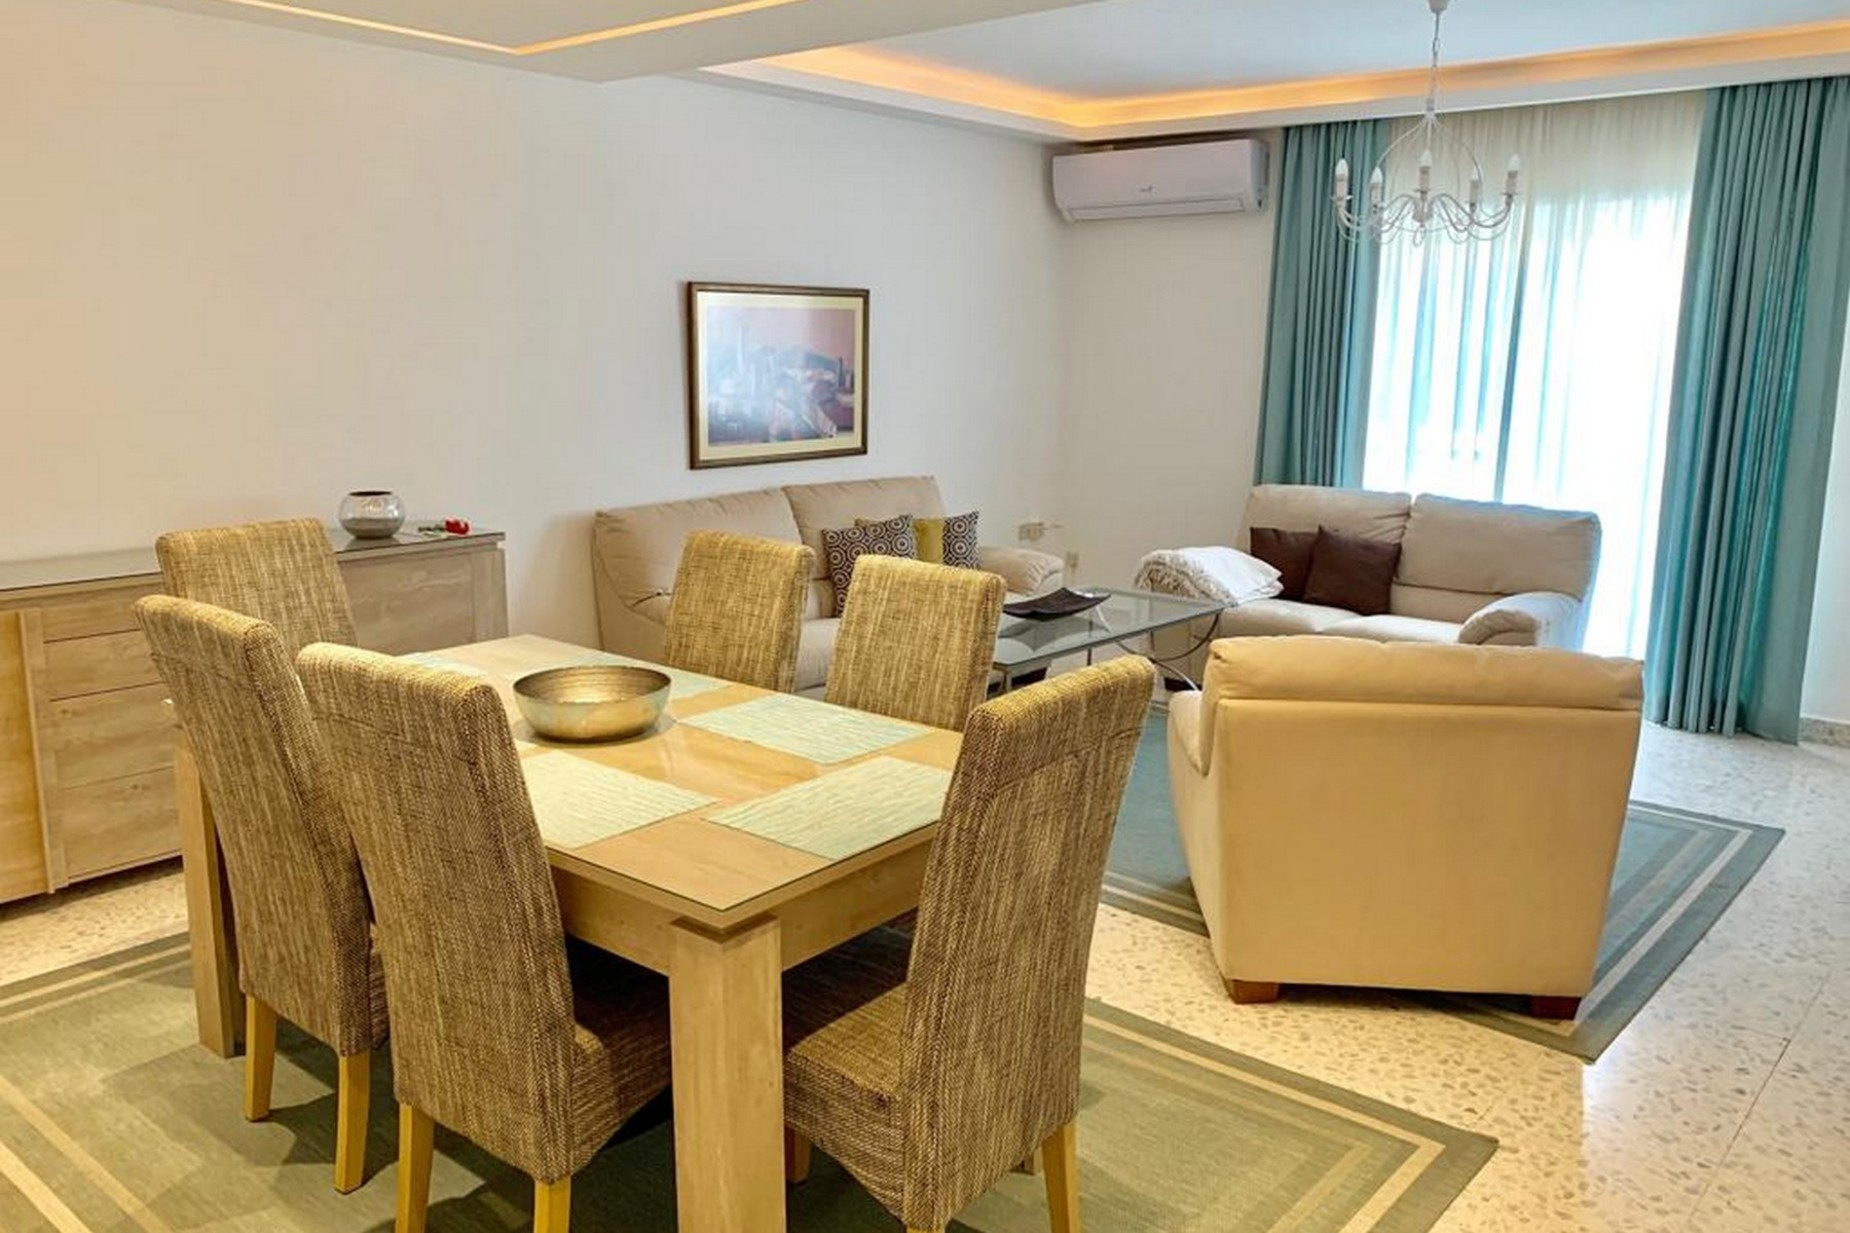 2 bed Maisonette For Rent in Madliena, Madliena - thumb 4